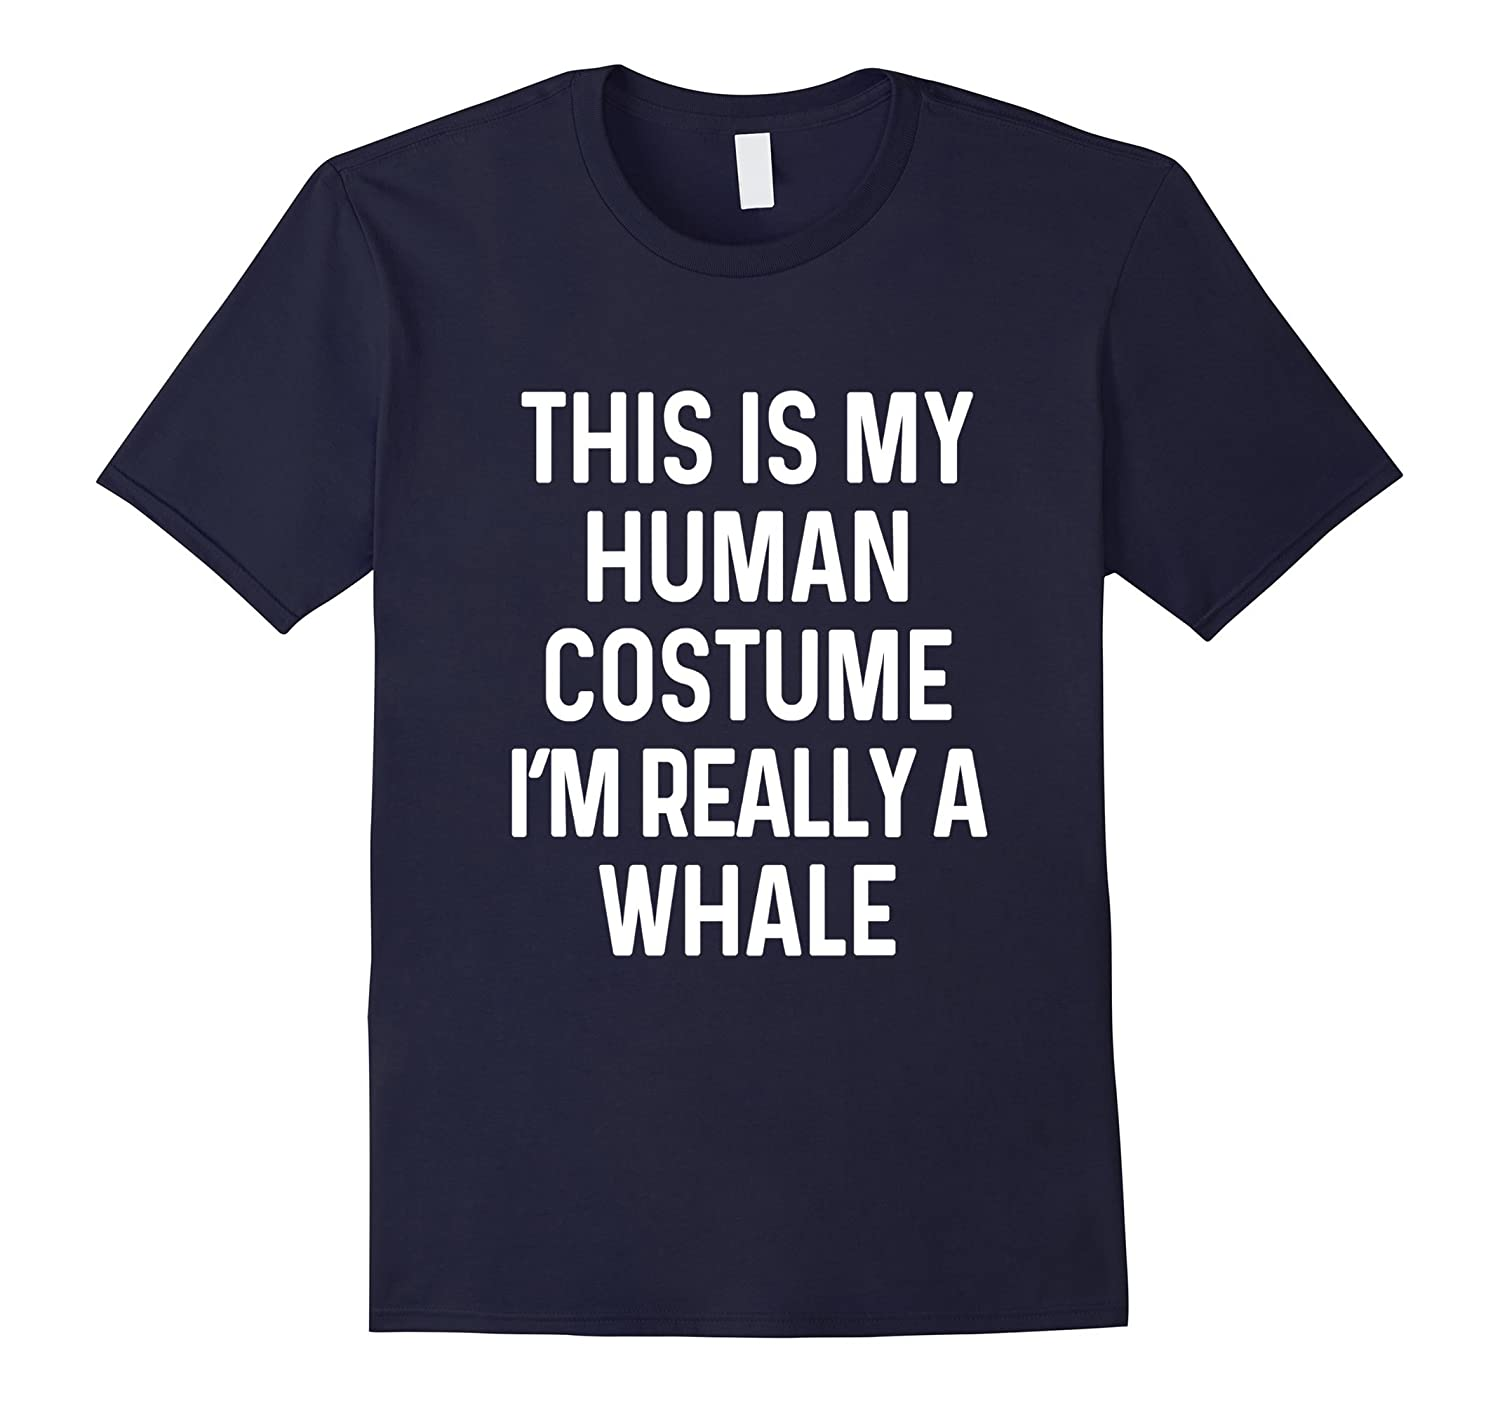 Funny Whale Costume Shirt Halloween Adults Kids Men Women-T-Shirt